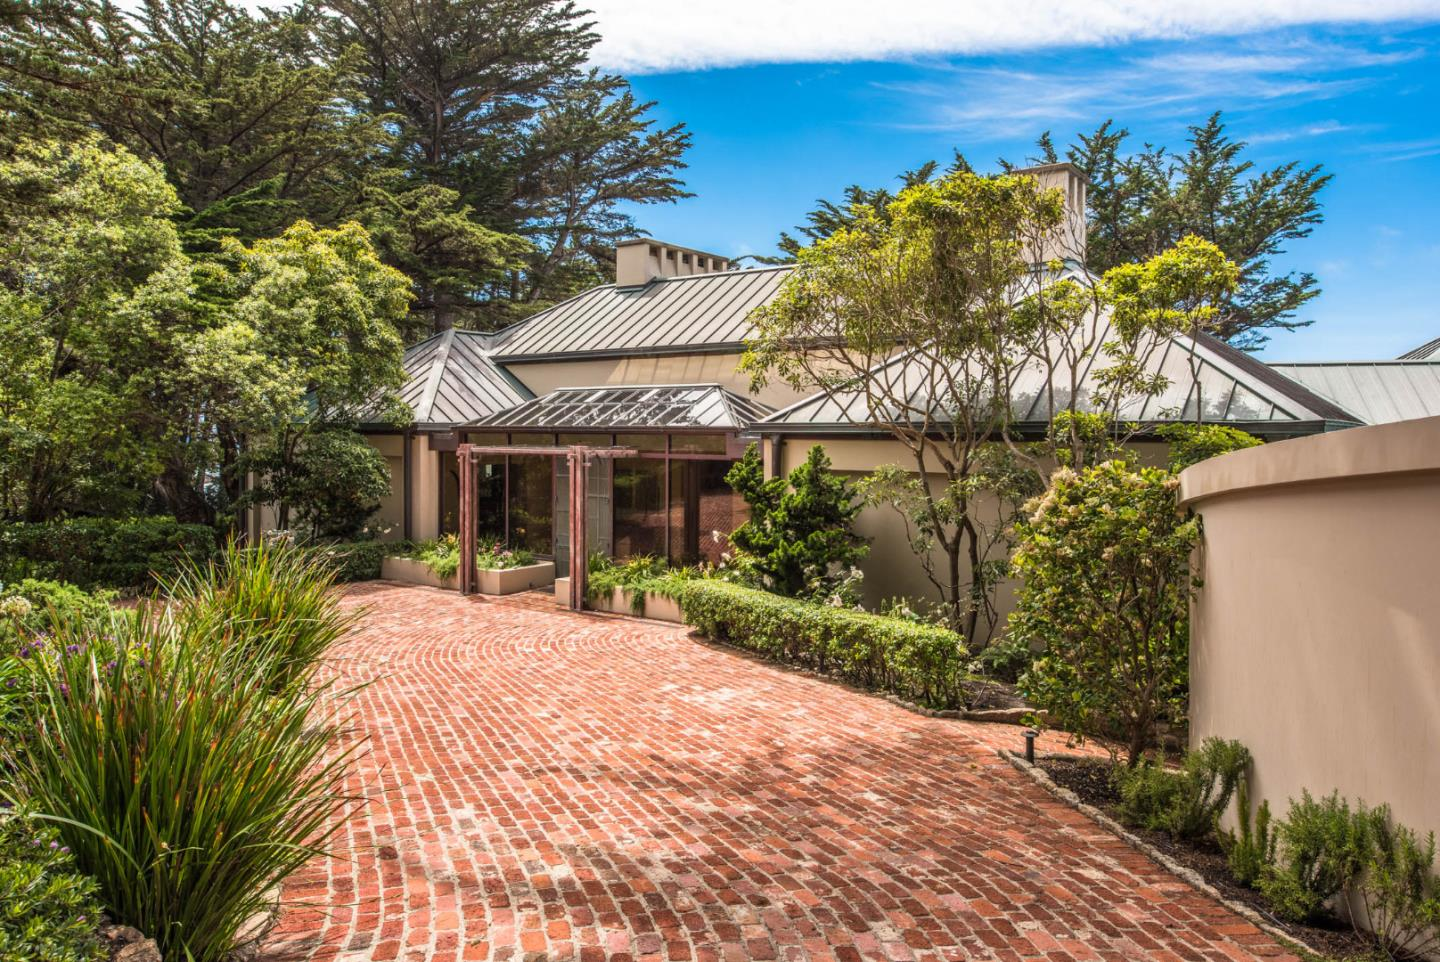 Single Family Home for Sale at 157 Spindrift Road 157 Spindrift Road Carmel, California 93923 United States